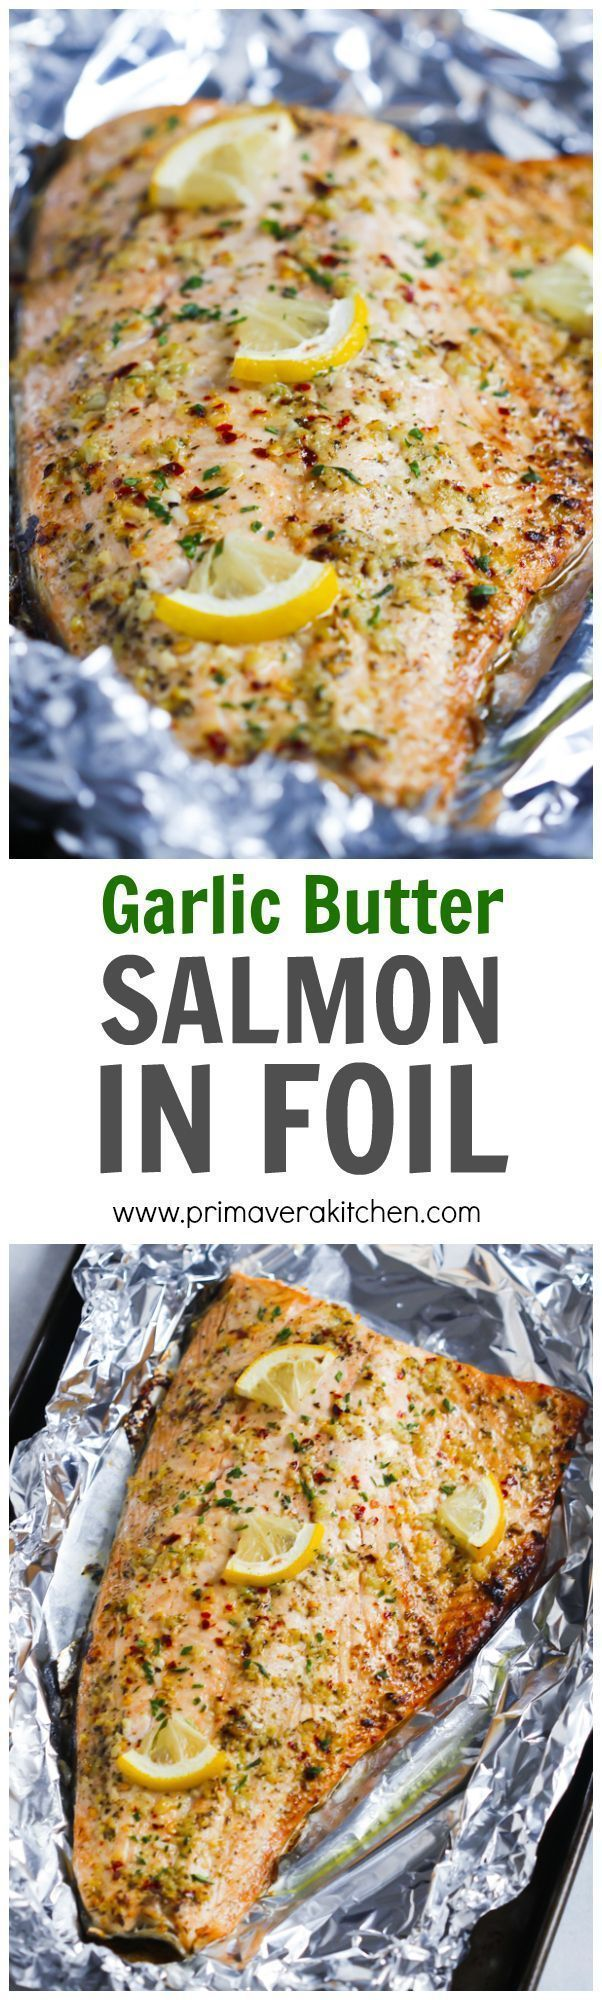 Garlic Butter Salmon in Foil - This Garlic Butter Salmon in Foil is an ultra-easy and a flavourful dinner to make during your busy weeknights. It's ready in less than 30 minutes and it's delicious wit (Salmon Recipes)